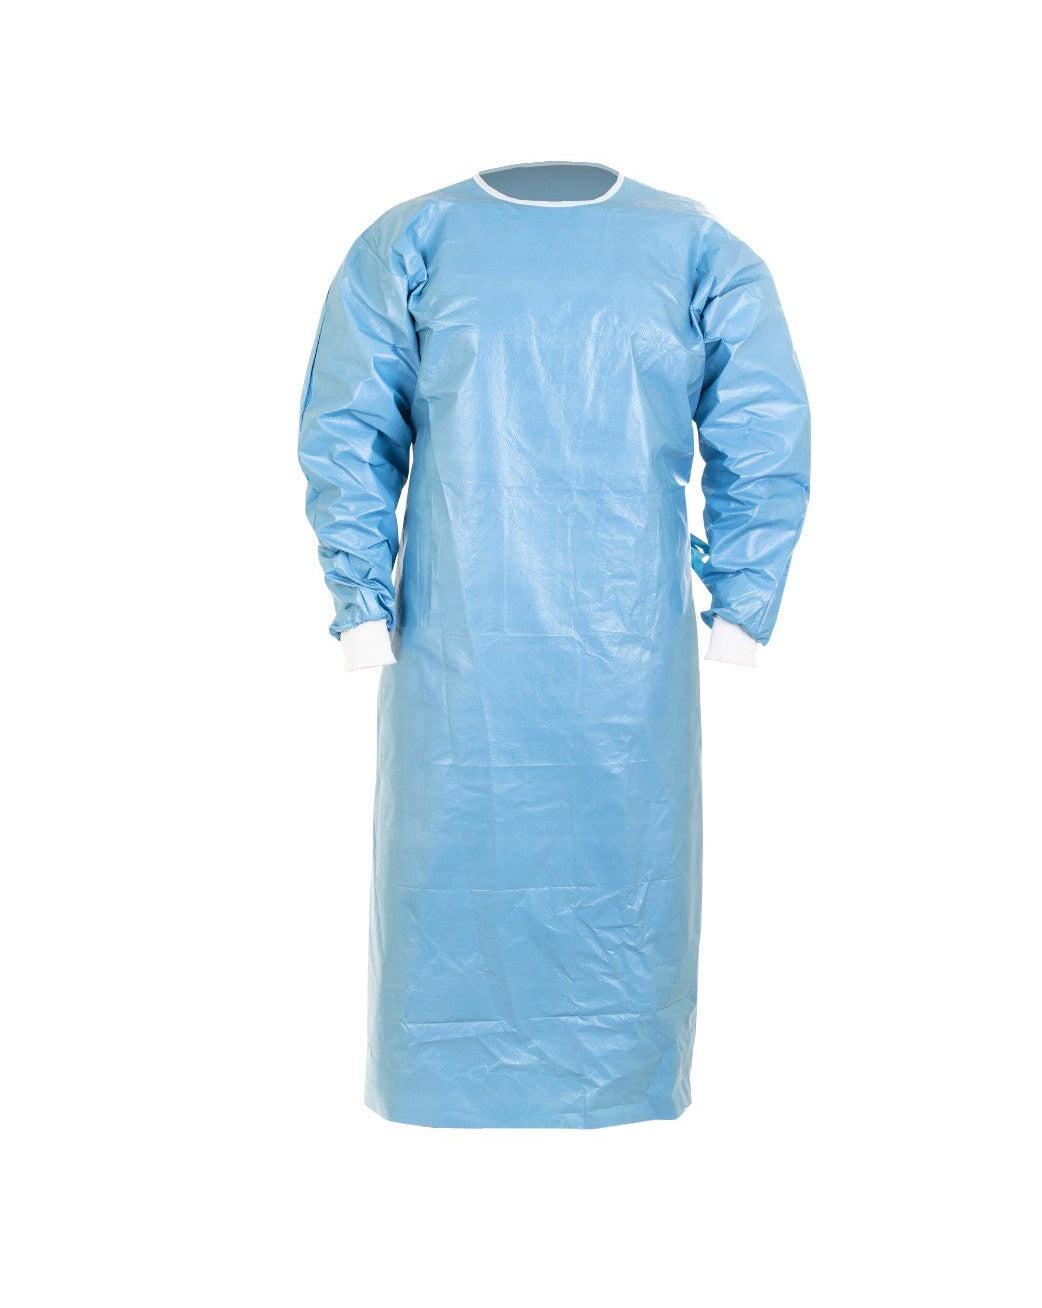 Sterile Laminated Surgical Gown